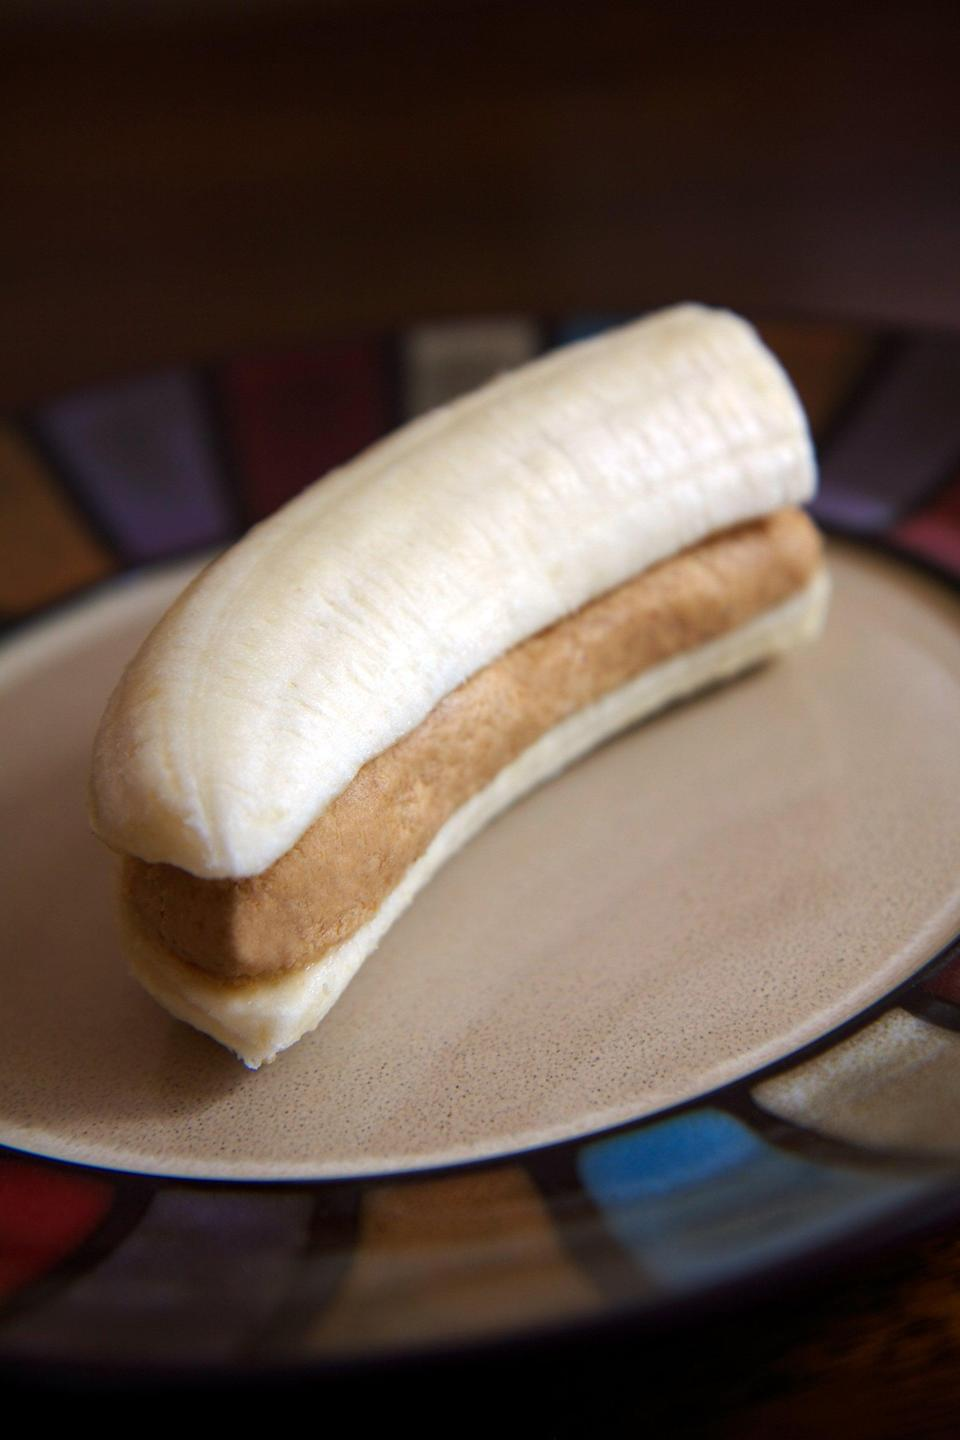 """<p>Banana and peanut butter get a protein upgrade with this quick snack. </p> <p><strong>Get the recipe:</strong> <a href=""""https://www.popsugar.com/fitness/High-Protein-Banana-Peanut-Butter-Snack-34280337"""" class=""""link rapid-noclick-resp"""" rel=""""nofollow noopener"""" target=""""_blank"""" data-ylk=""""slk:banana and PB snack"""">banana and PB snack</a></p>"""